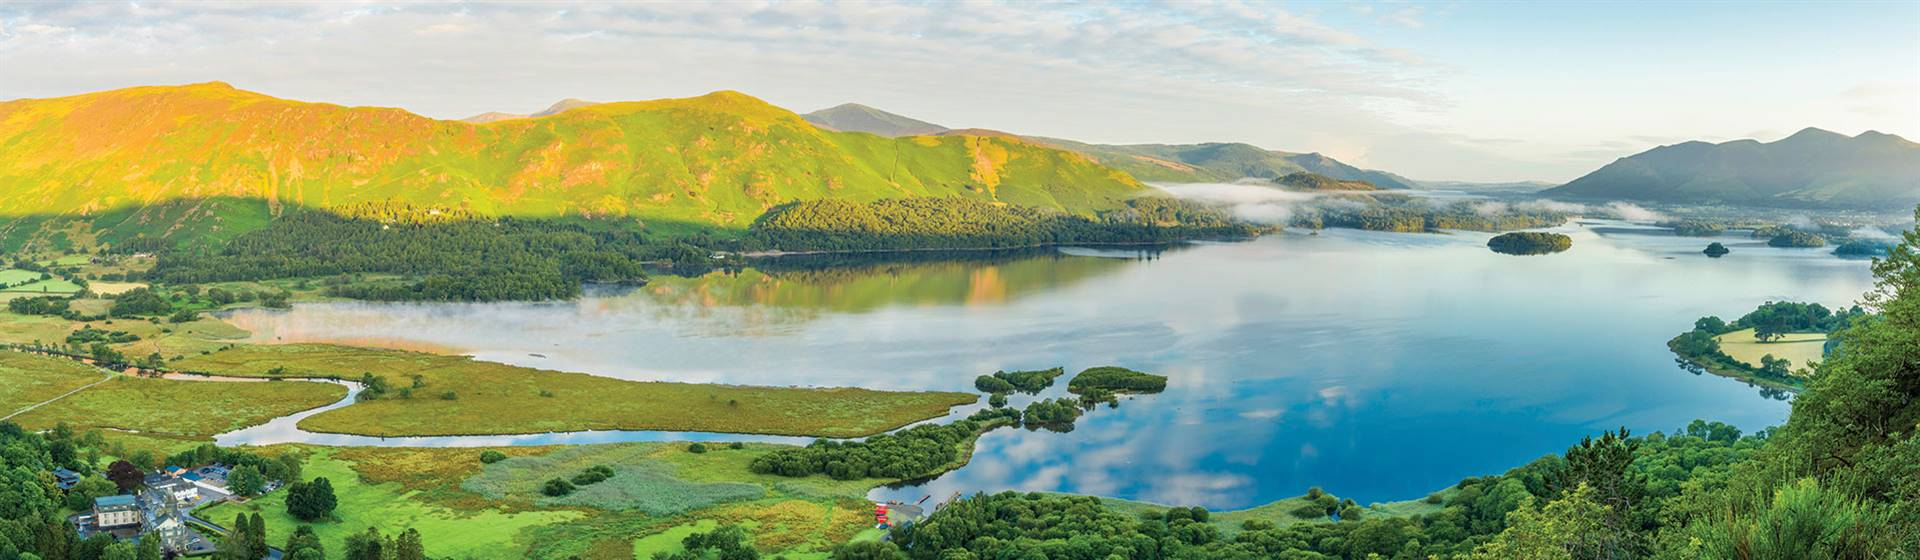 All Inclusive Stay at The Lake District 2022